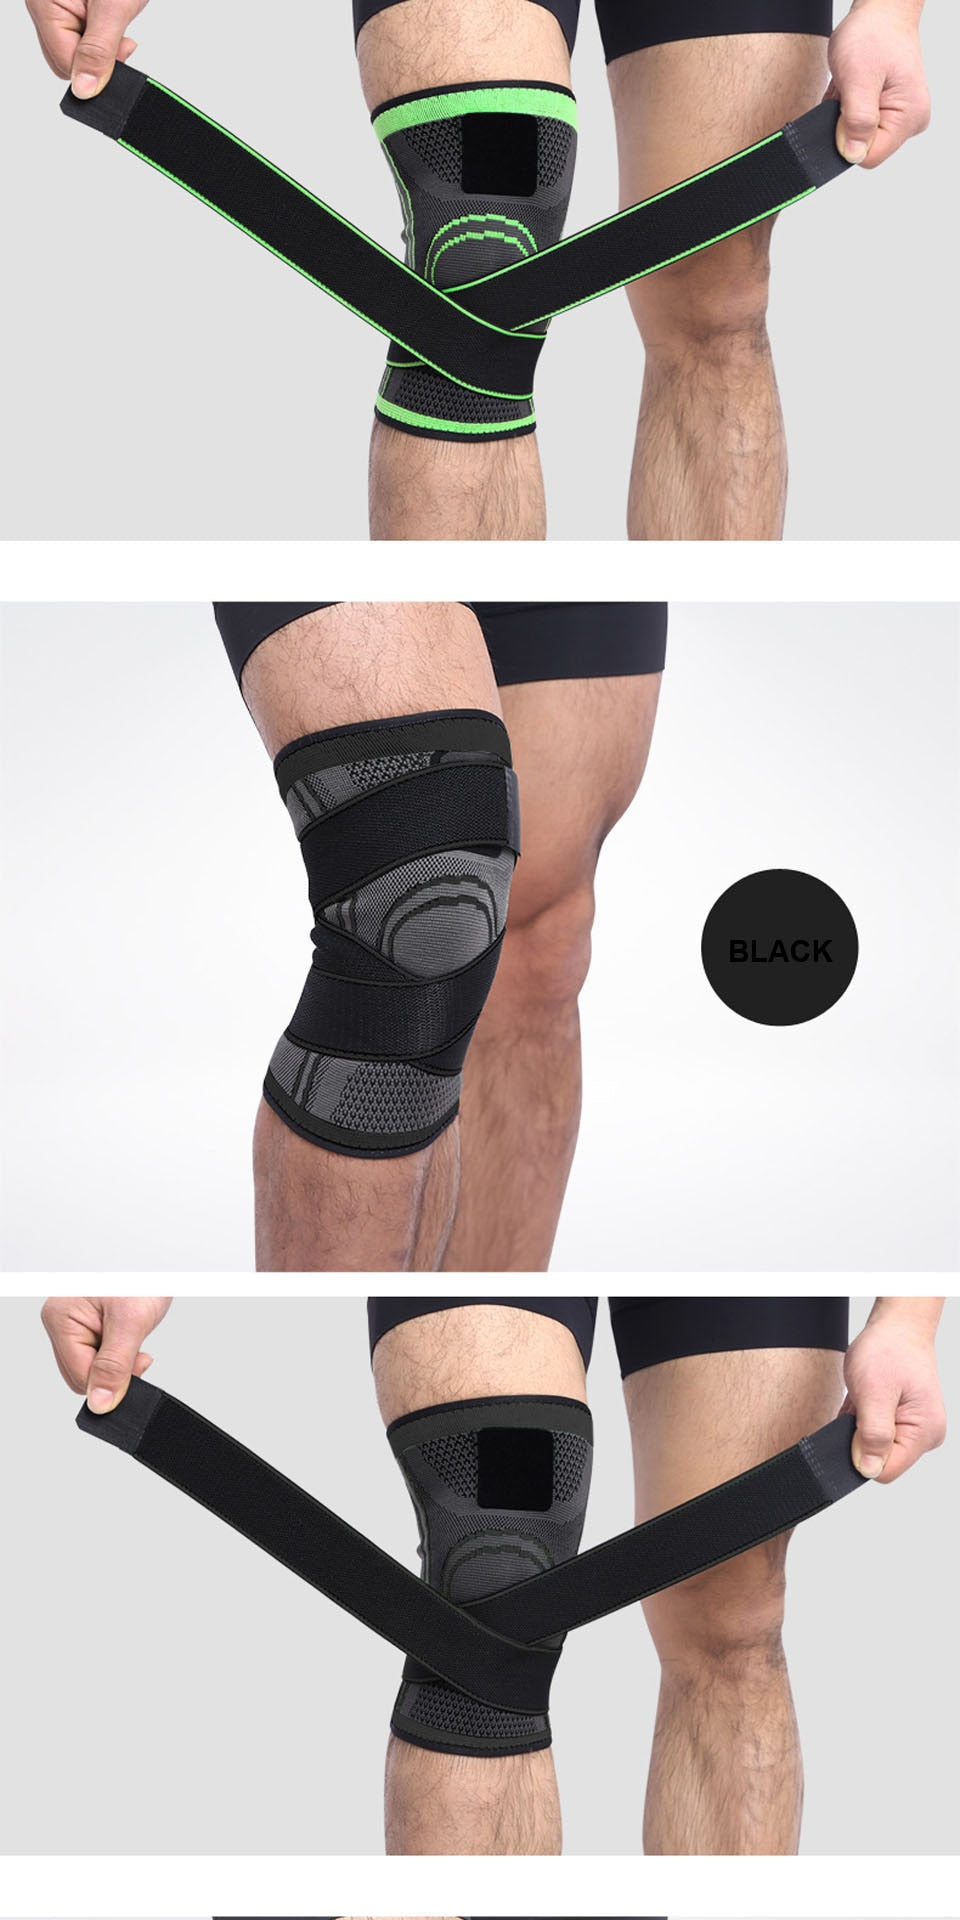 Protective Sports Knee Pad Breathable Bandage - Jeybeauty